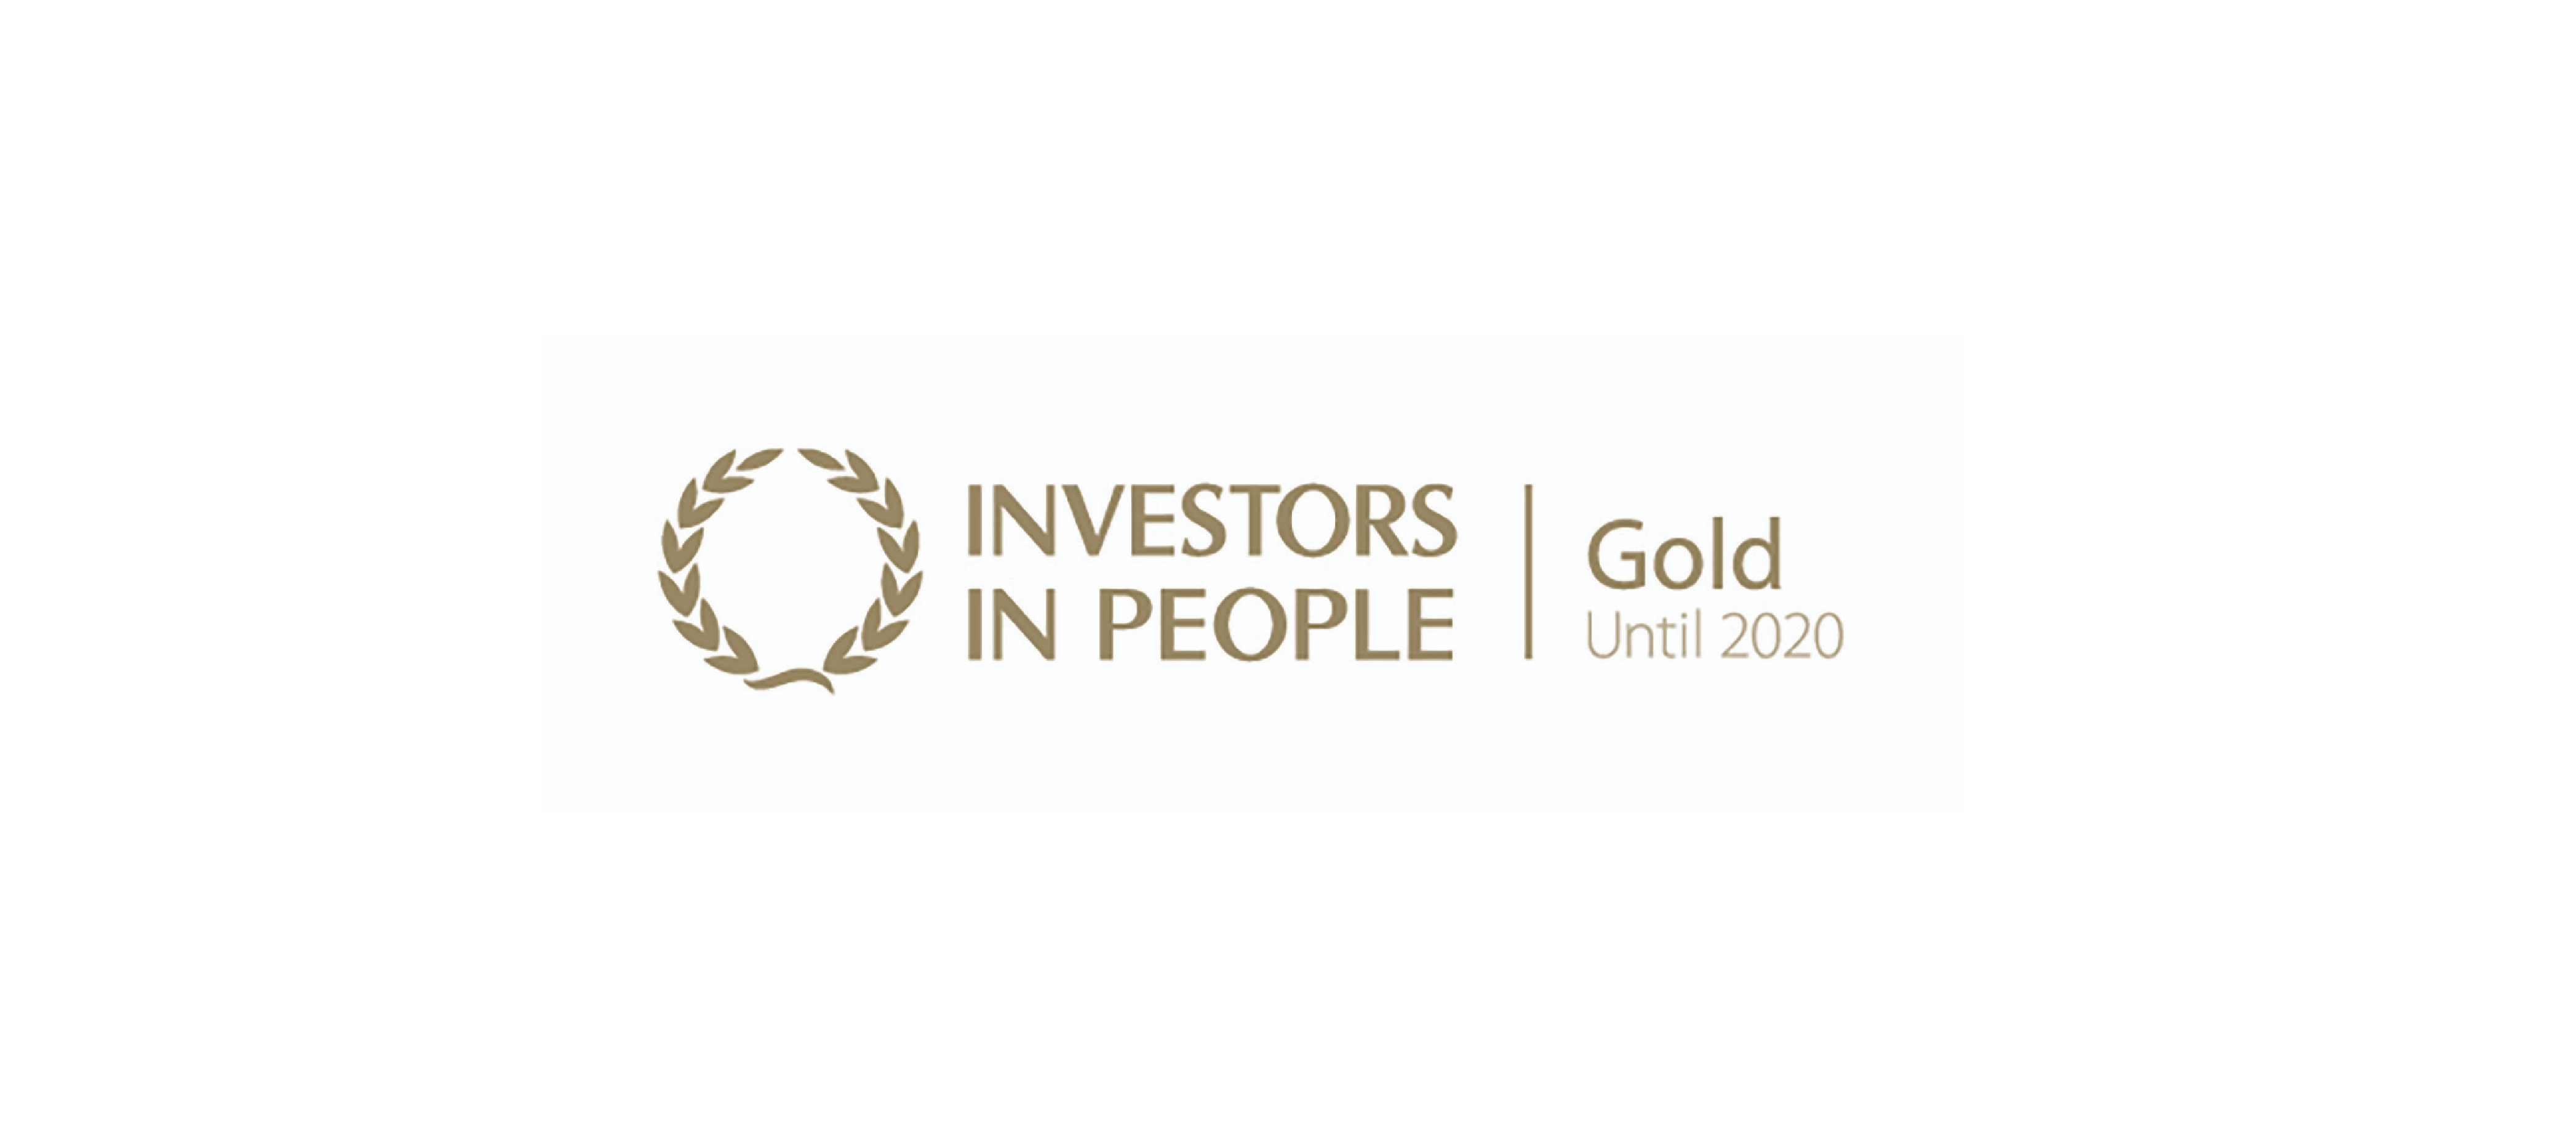 Southville International School and Colleges Receives the Seal of Gold from Investors in People